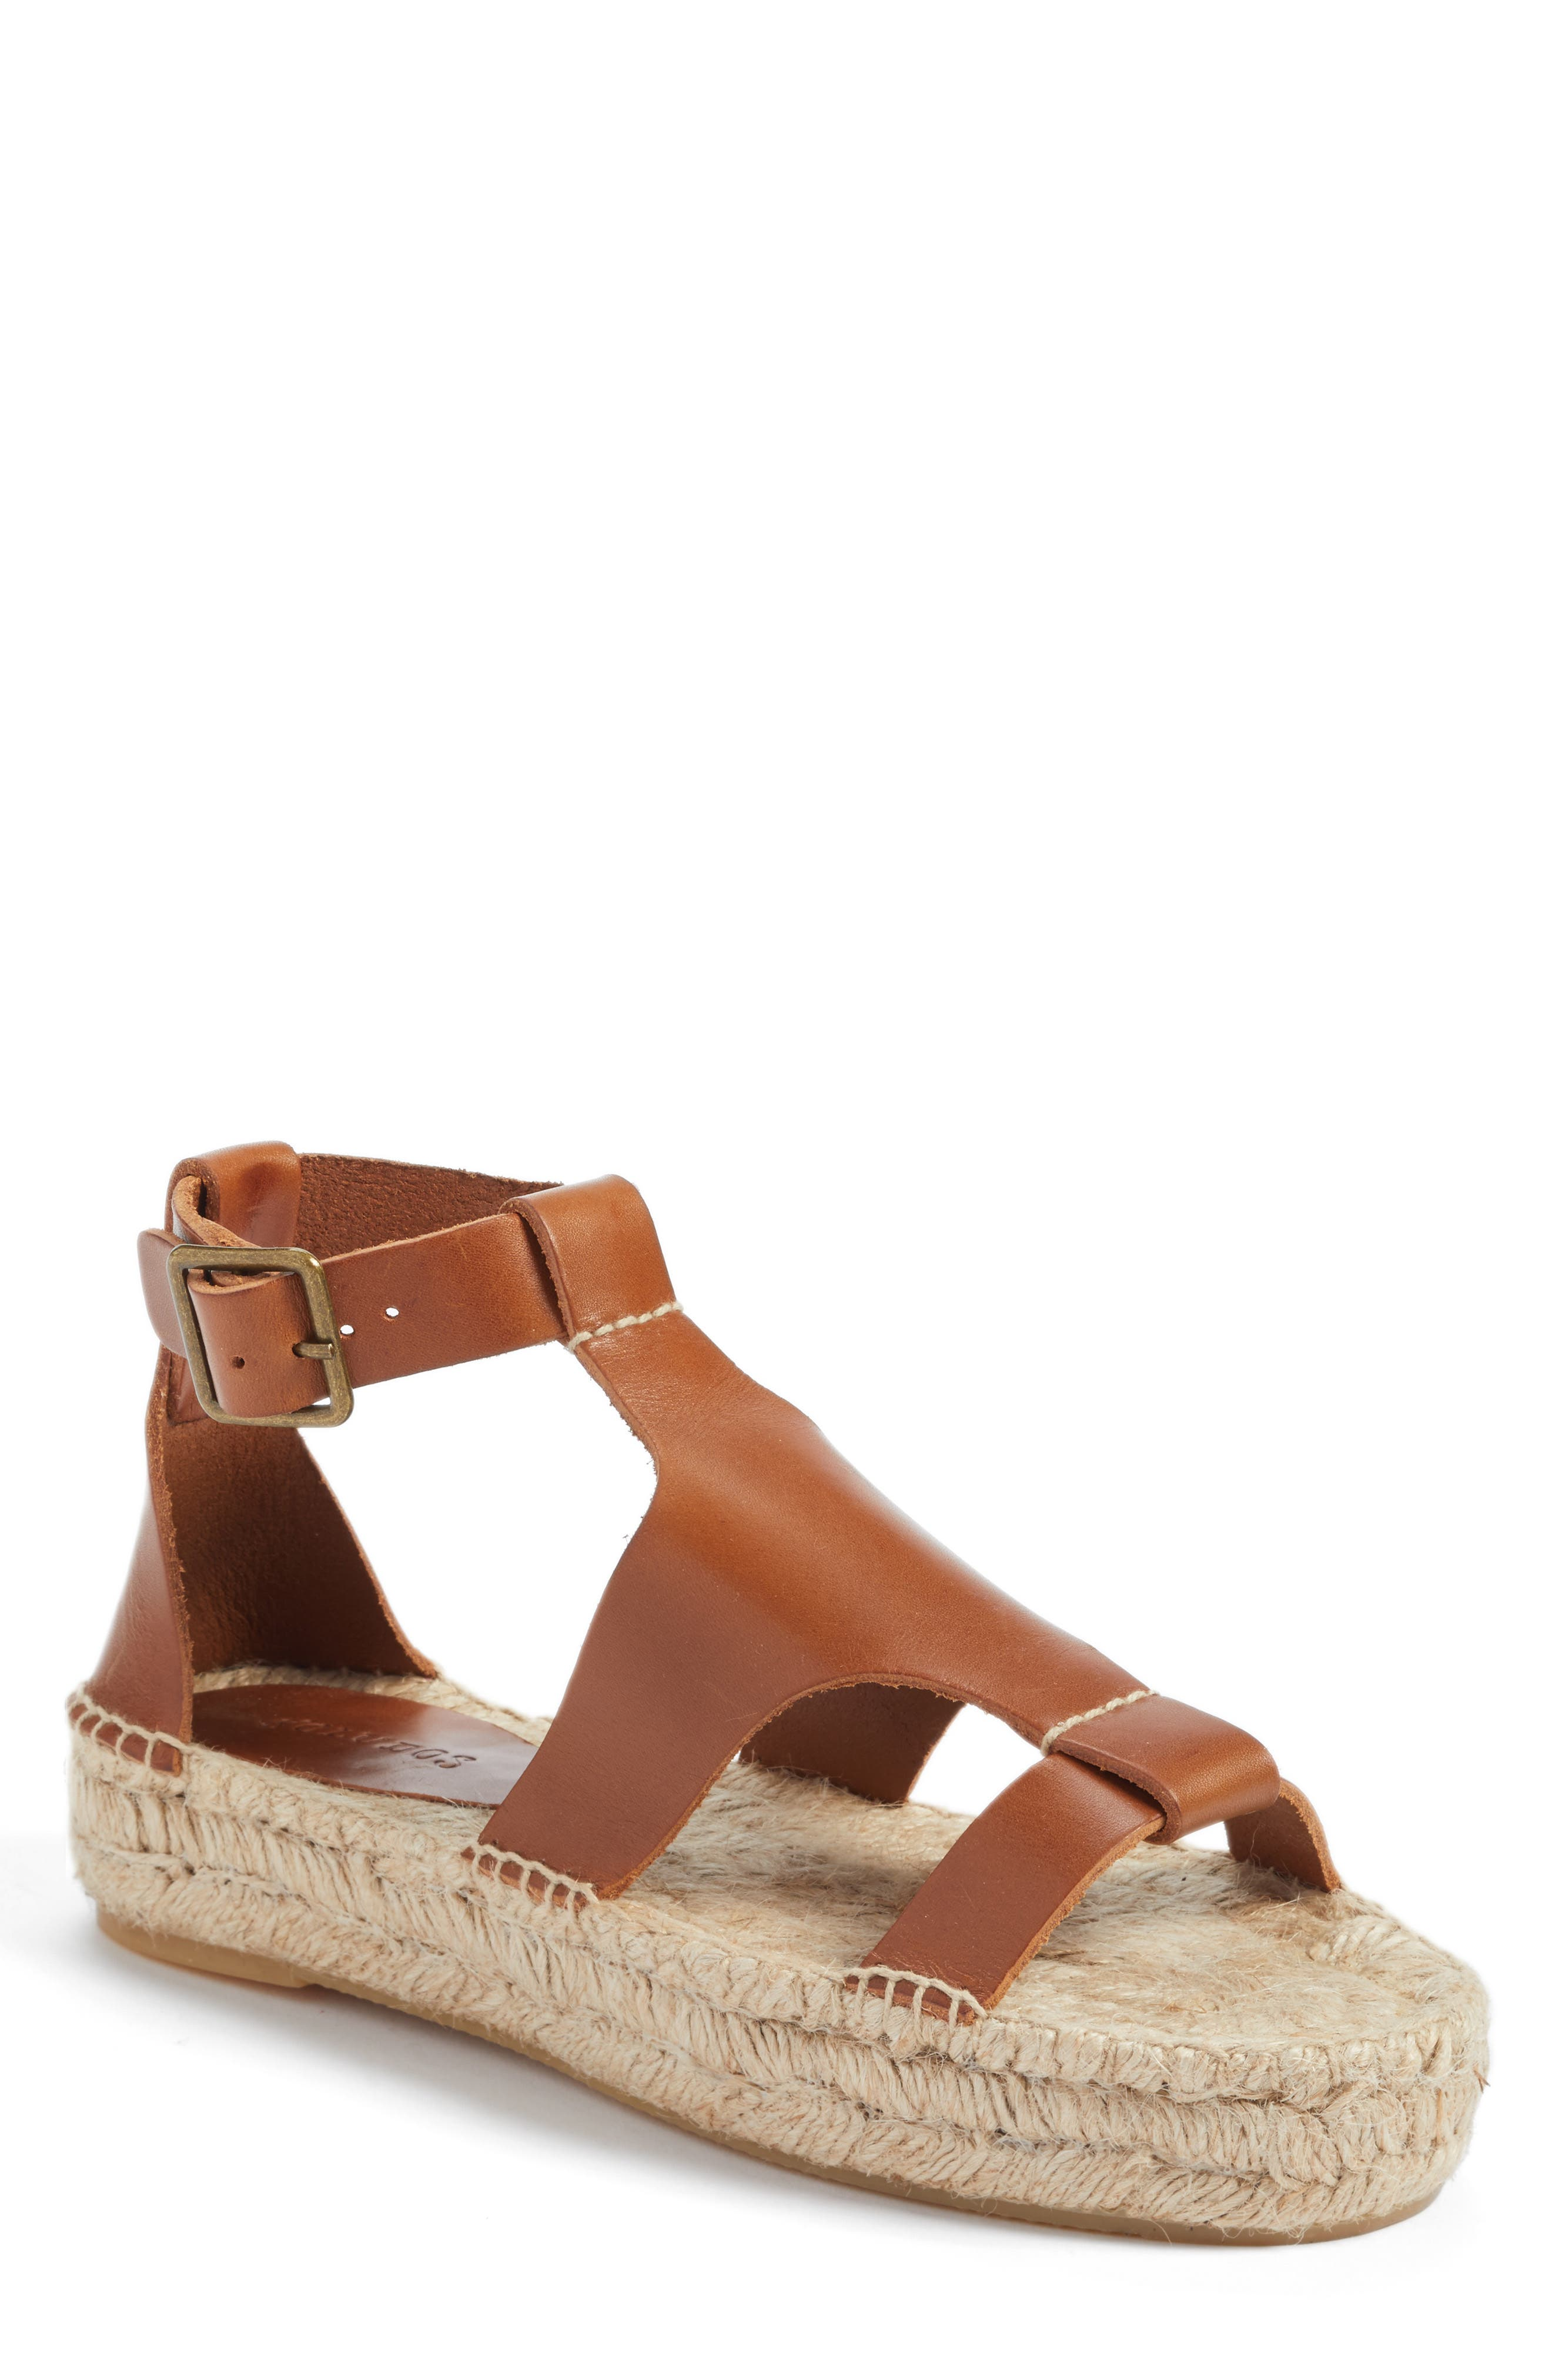 Alternate Image 1 Selected - Soludos Strappy Espadrille Sandal (Women)